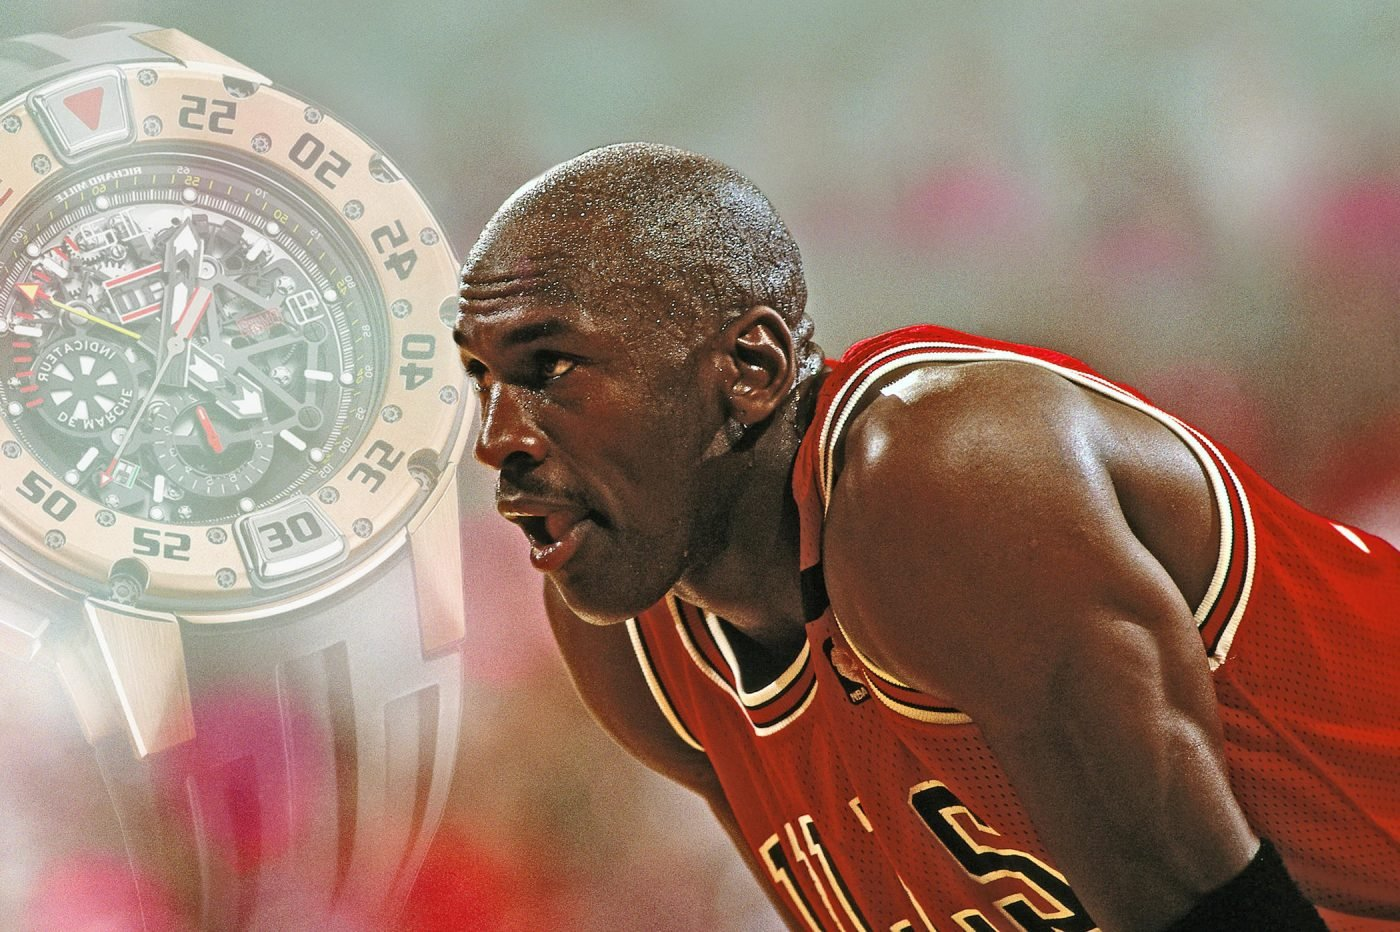 Timebloid Watch Game of NBA Stars – Michael Jordan